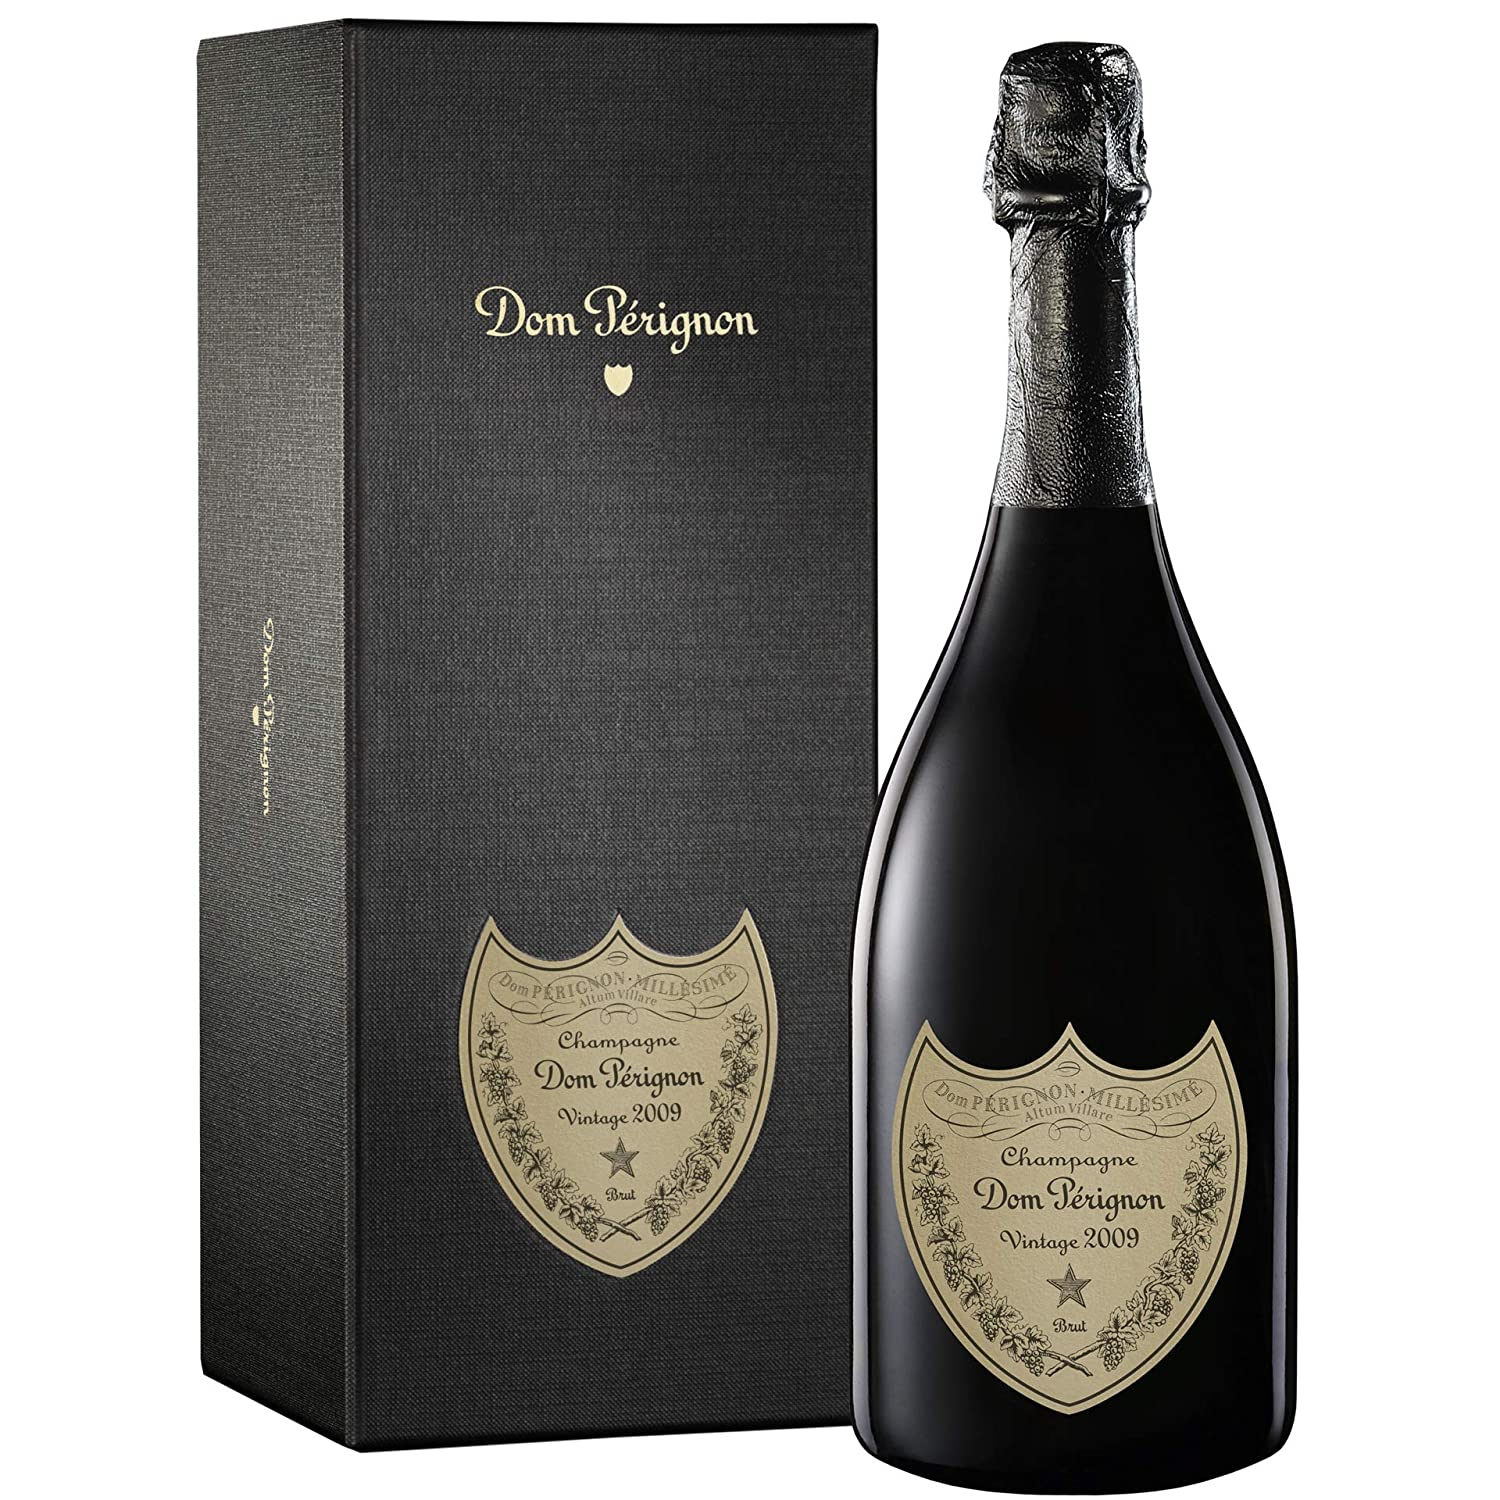 Dom Perignon 2009 Vintage Champagne Gift Box 75 Cl Amazon Co Uk